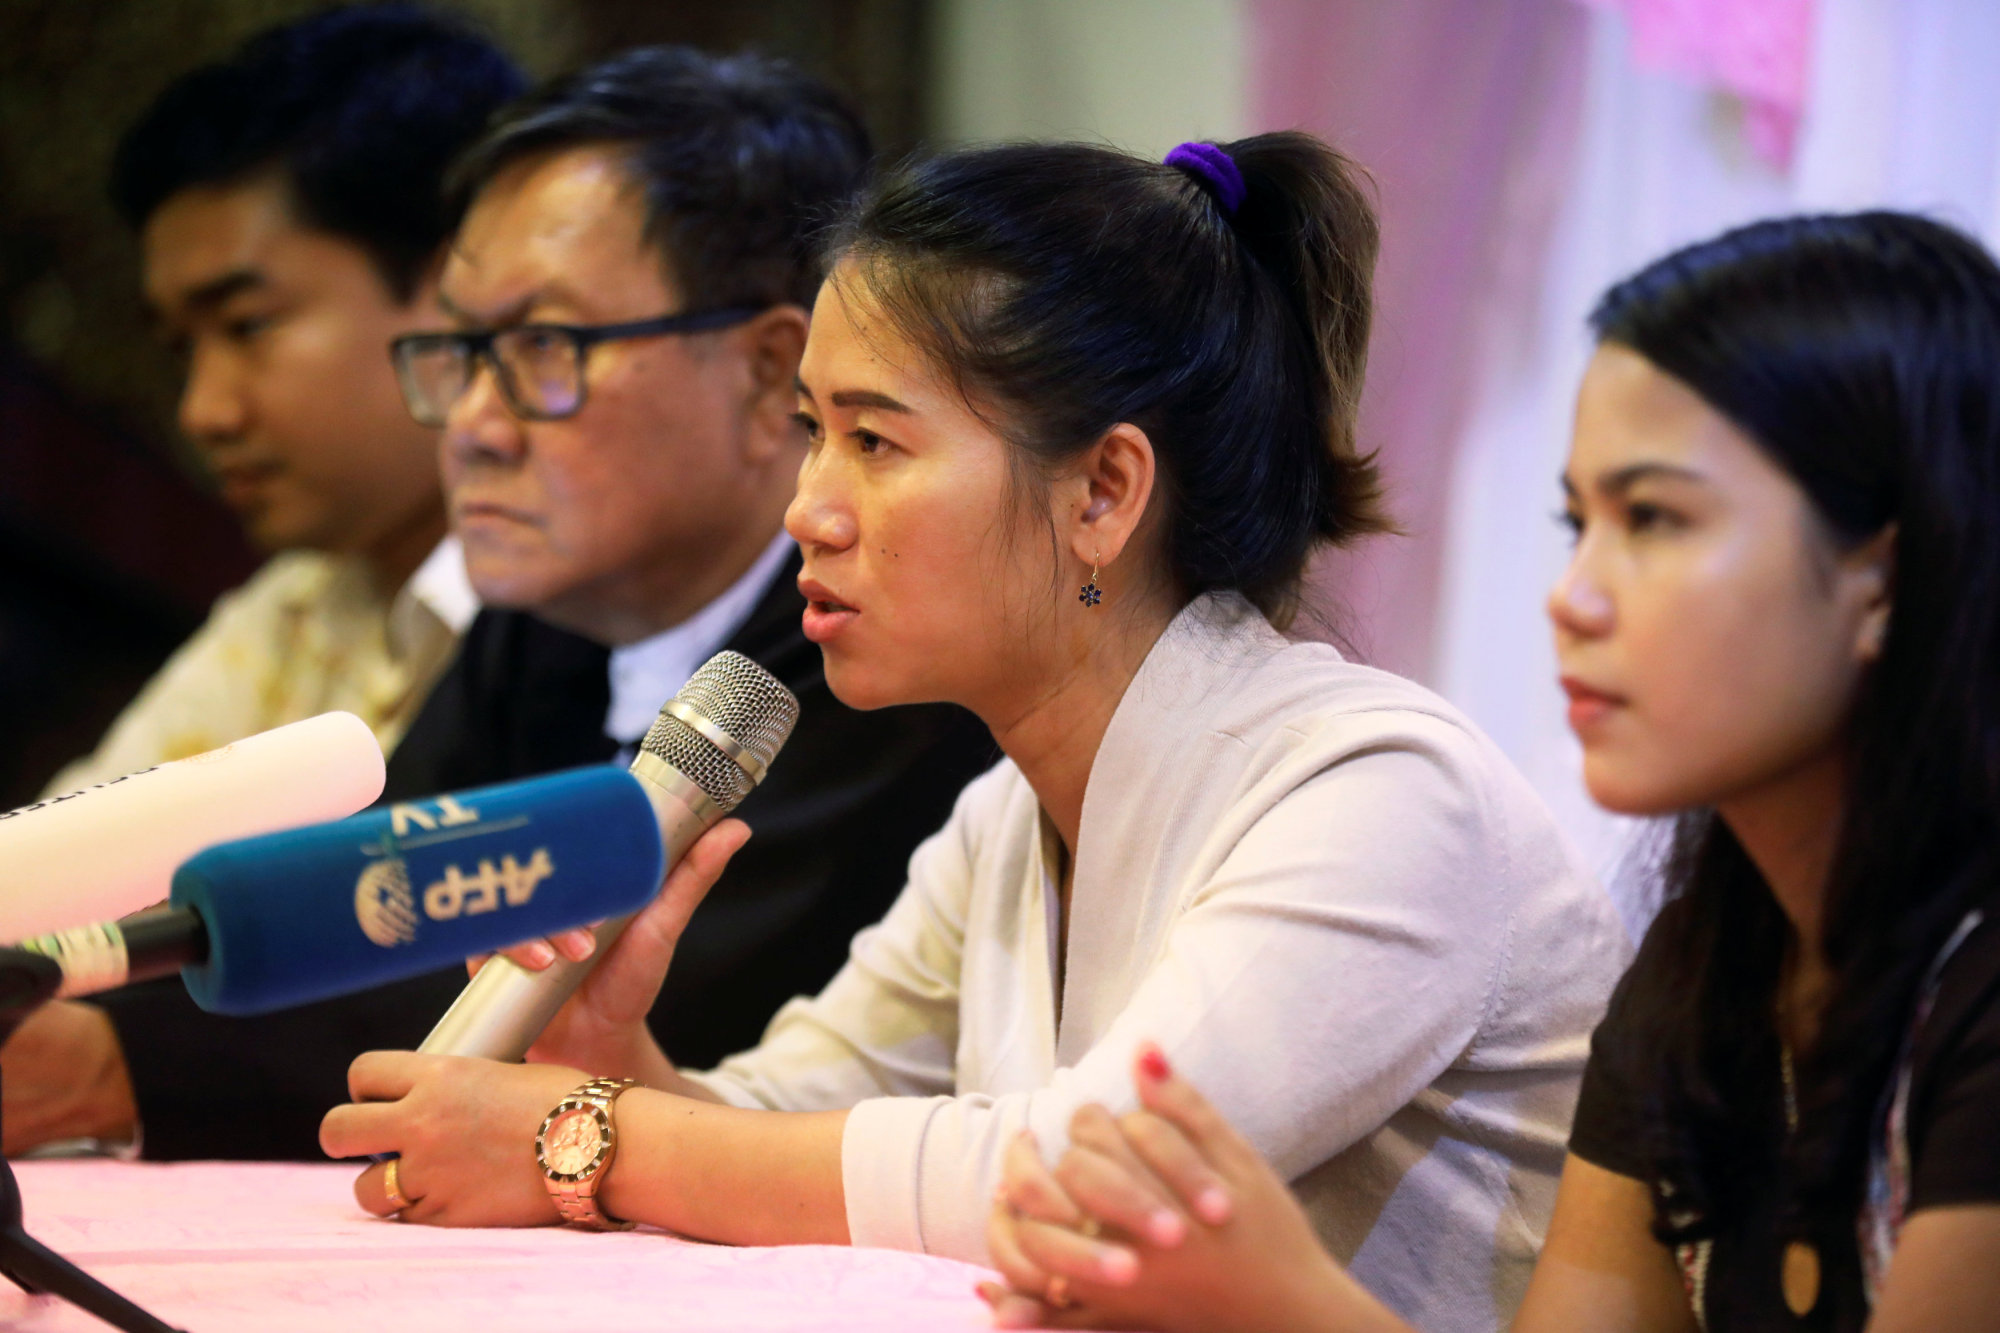 Pan Ei Mon, wife of Reuters journalist Wa Lone, talks to reporters during a family and lawyers press conference in Yangon Tuesday. | REUTERS